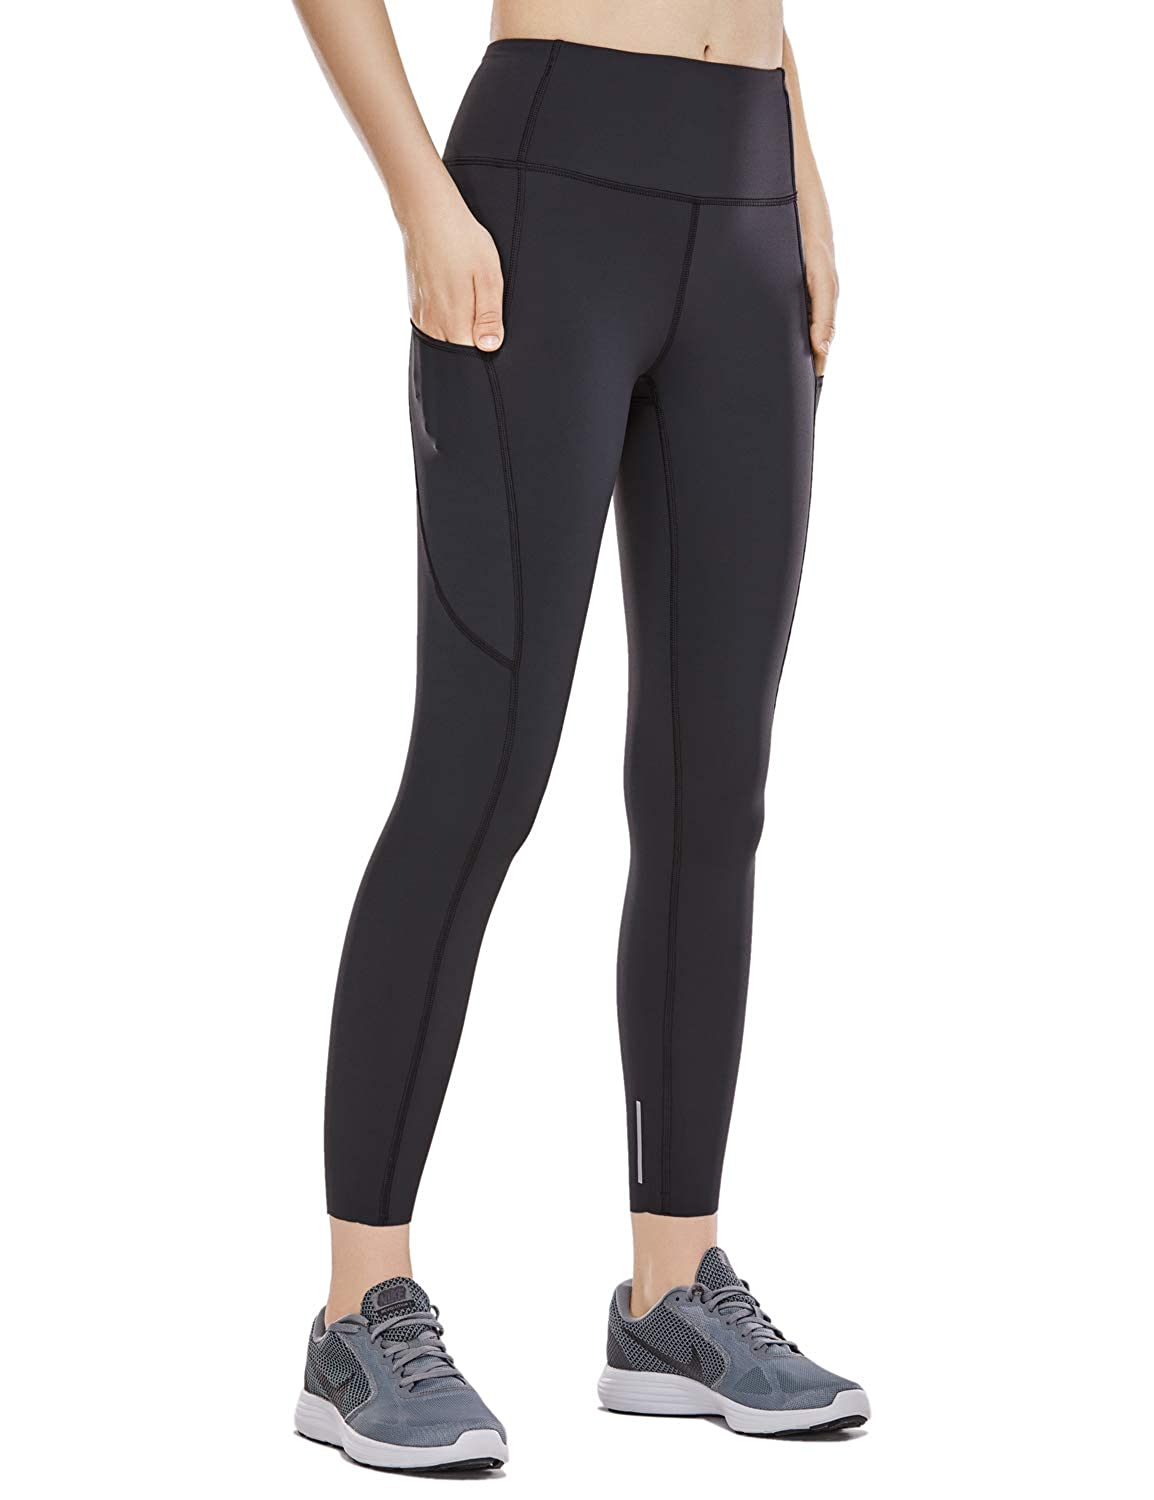 3c6fd6a684159 CRZ YOGA Women's Naked Feeling High Waist 7/8 Tight Training Yoga Leggings  with Side Pocket-25 Inches at Amazon Women's Clothing store: